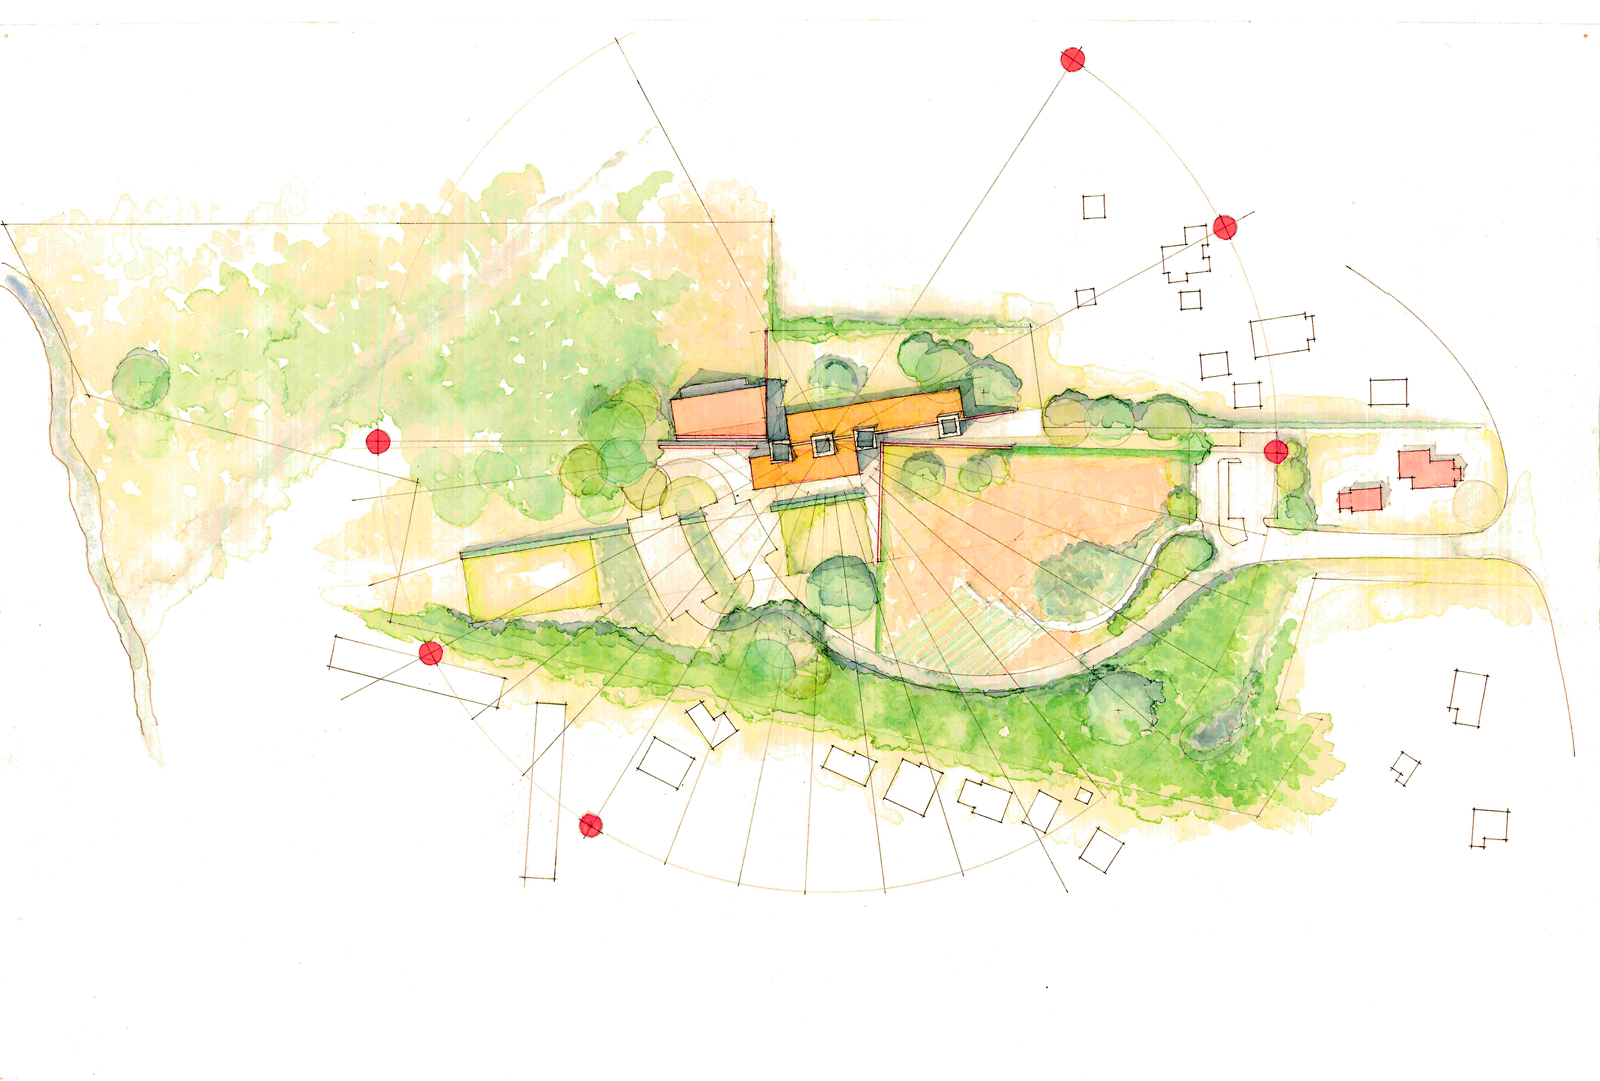 The rendering demonstrates how the orientation of the proposed building maximizes solar energy. The orange dots represent the sun's arc at its highest, middle, and lowest points. South-facing windows combined with rammed-earth and straw-bale construction